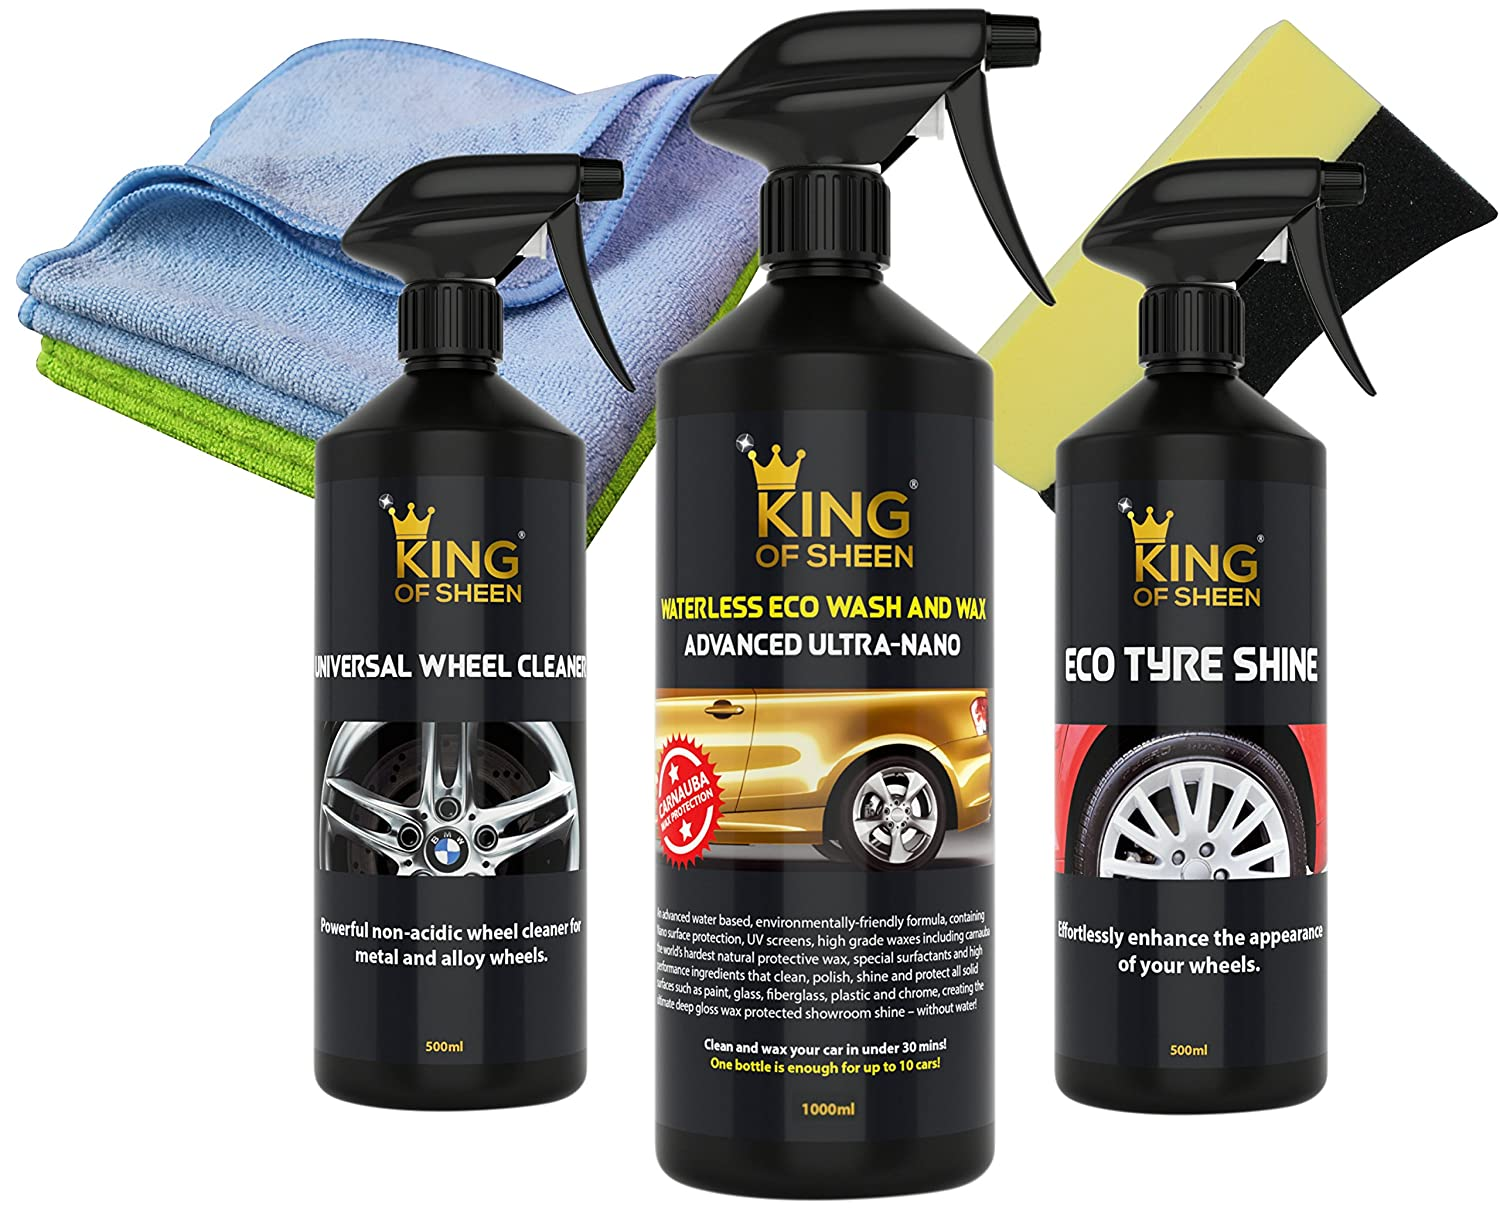 King of Sheen Exterior Car Gifts Kit -Advanced Ultra Nano Waterless Car Cleaner 1lt, Universal Wheel Cleaner 500ml and Eco Tyre Shine 500ml + 2 Proffessional Microfibre Cloths and Tyre Dressing Sponge